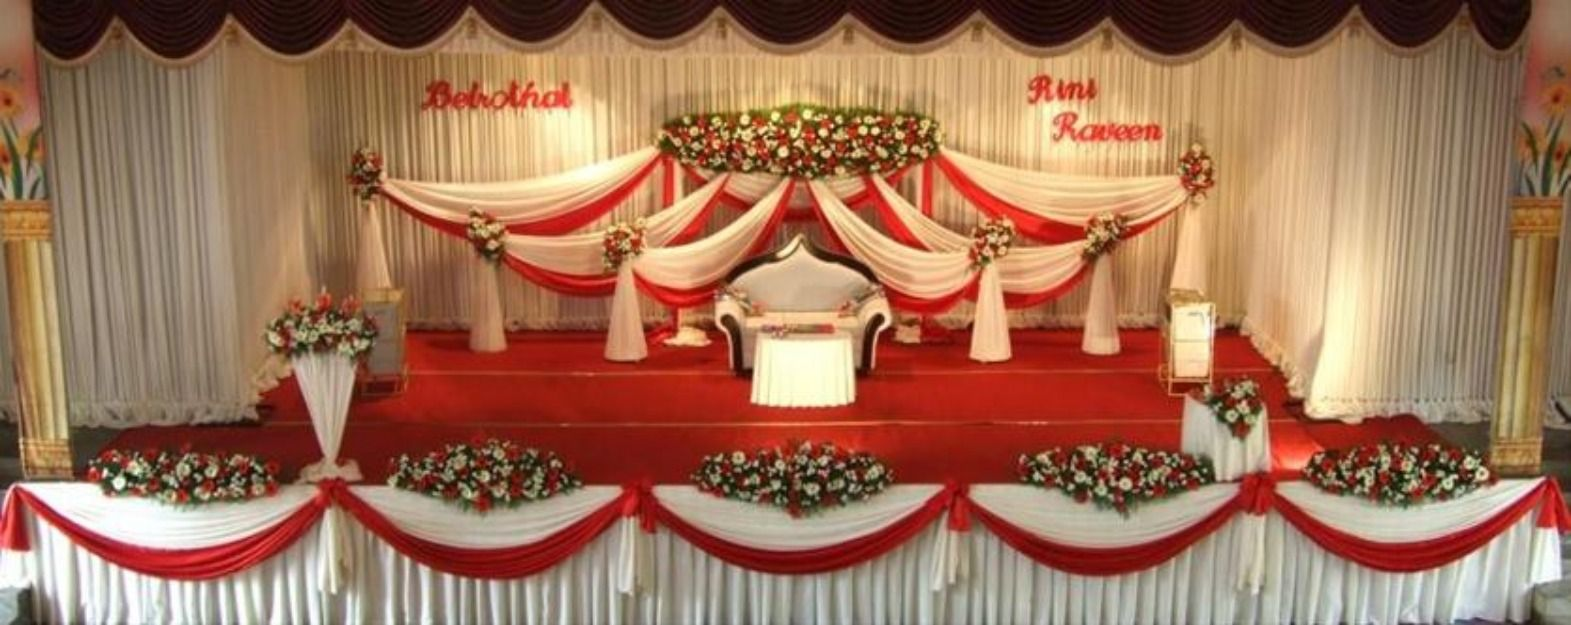 Stage decoration kerala wedding stage decoration 6 for American wedding stage decoration